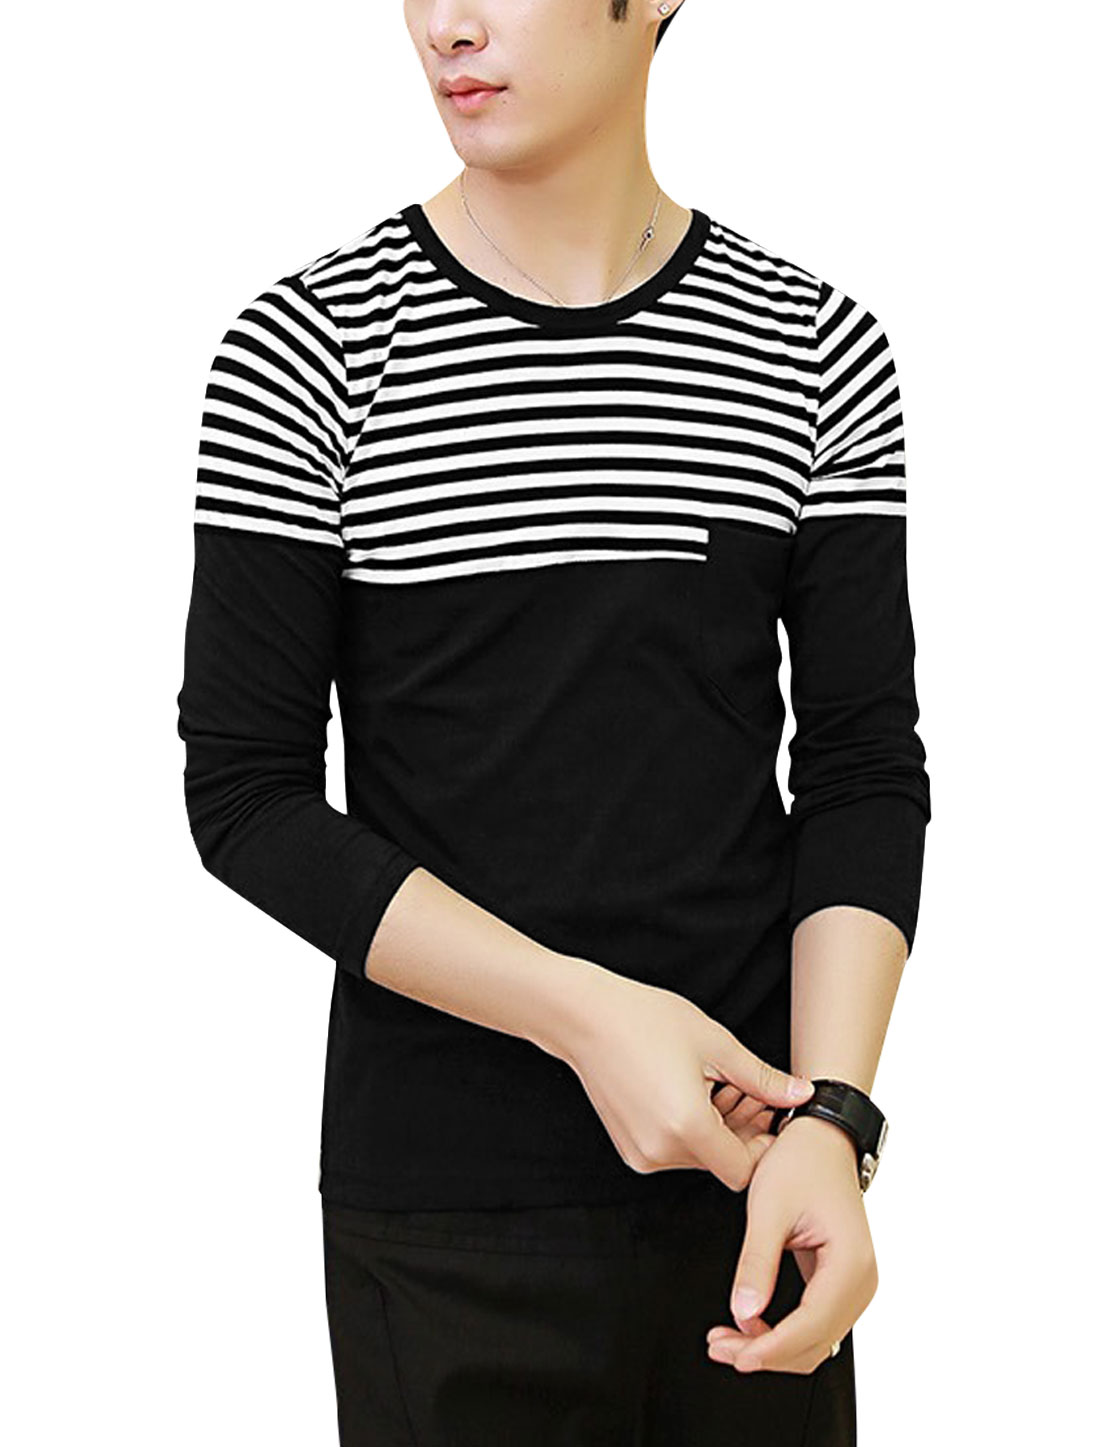 Men Stripes Pattern One Pocket Chest Slim Fit Shirt Black M